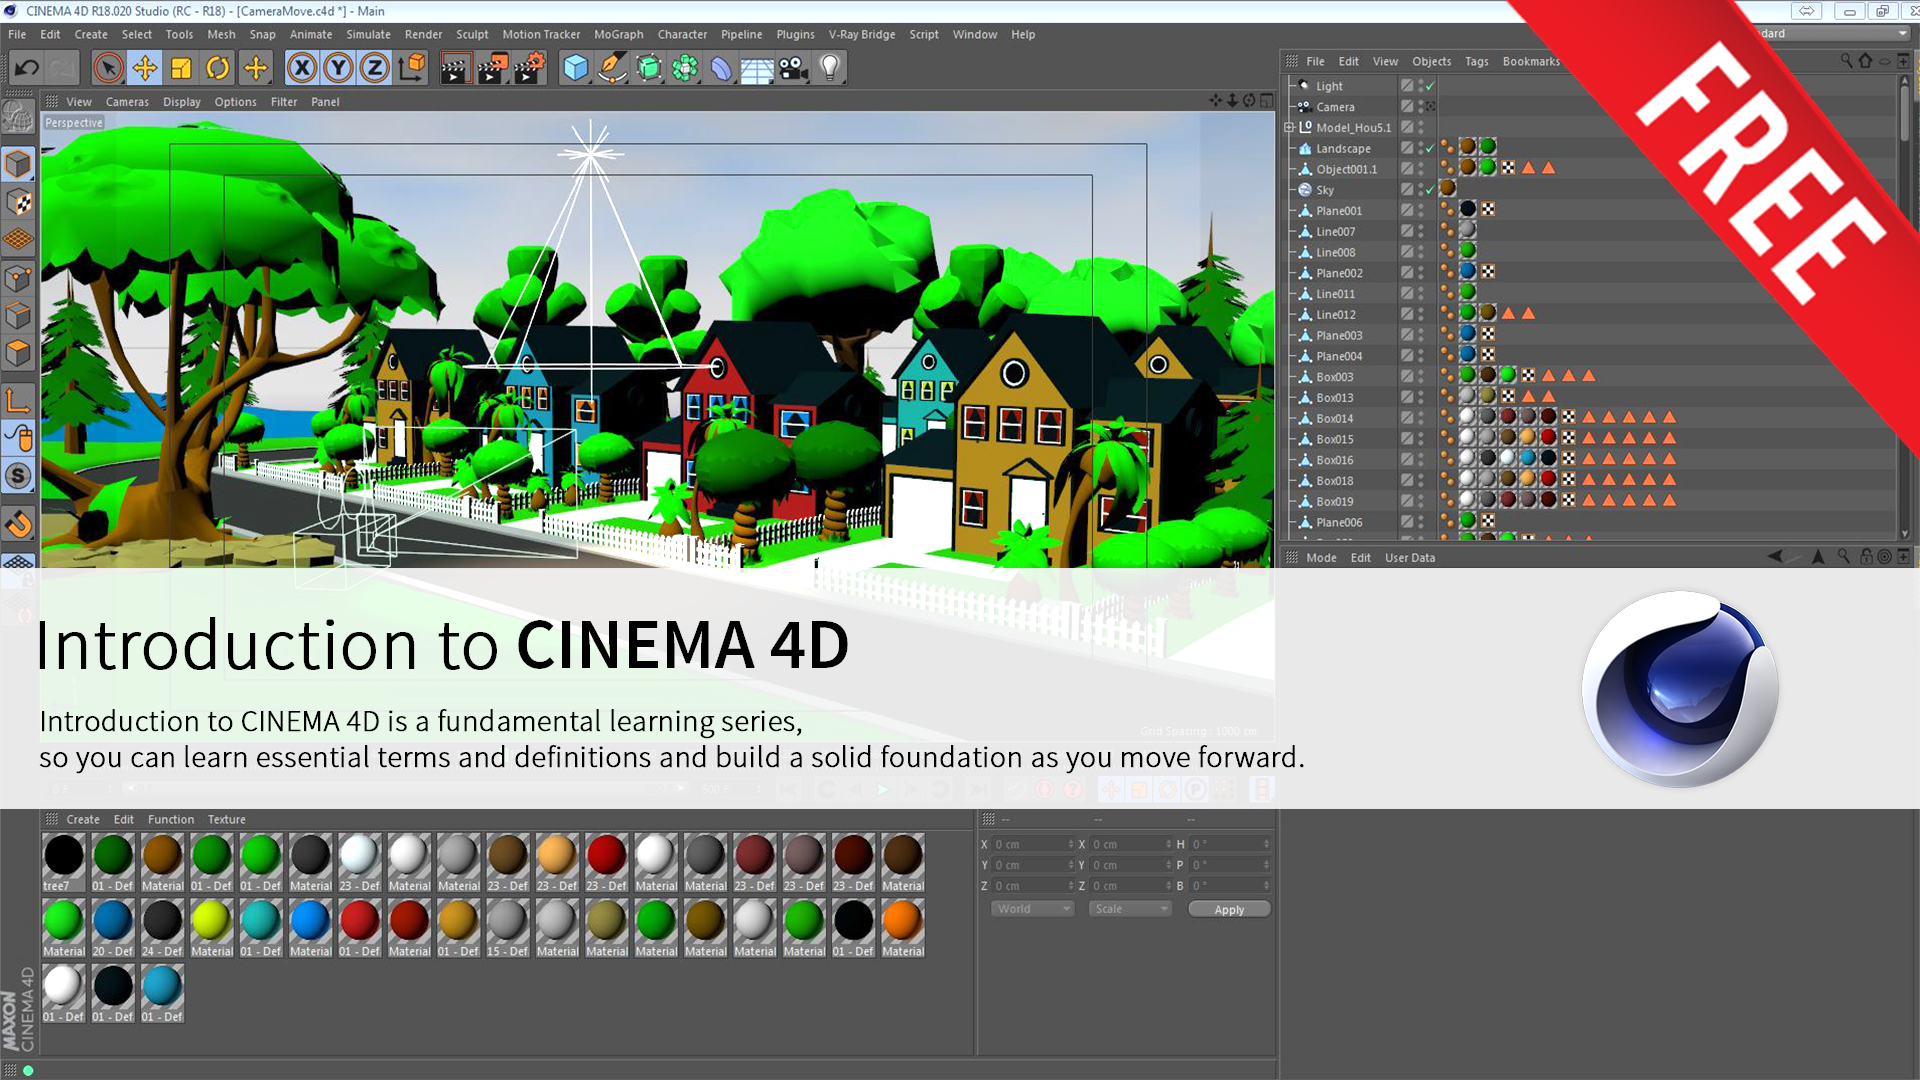 INTRODUCTION TO CINEMA4D – Maqsad Animation School